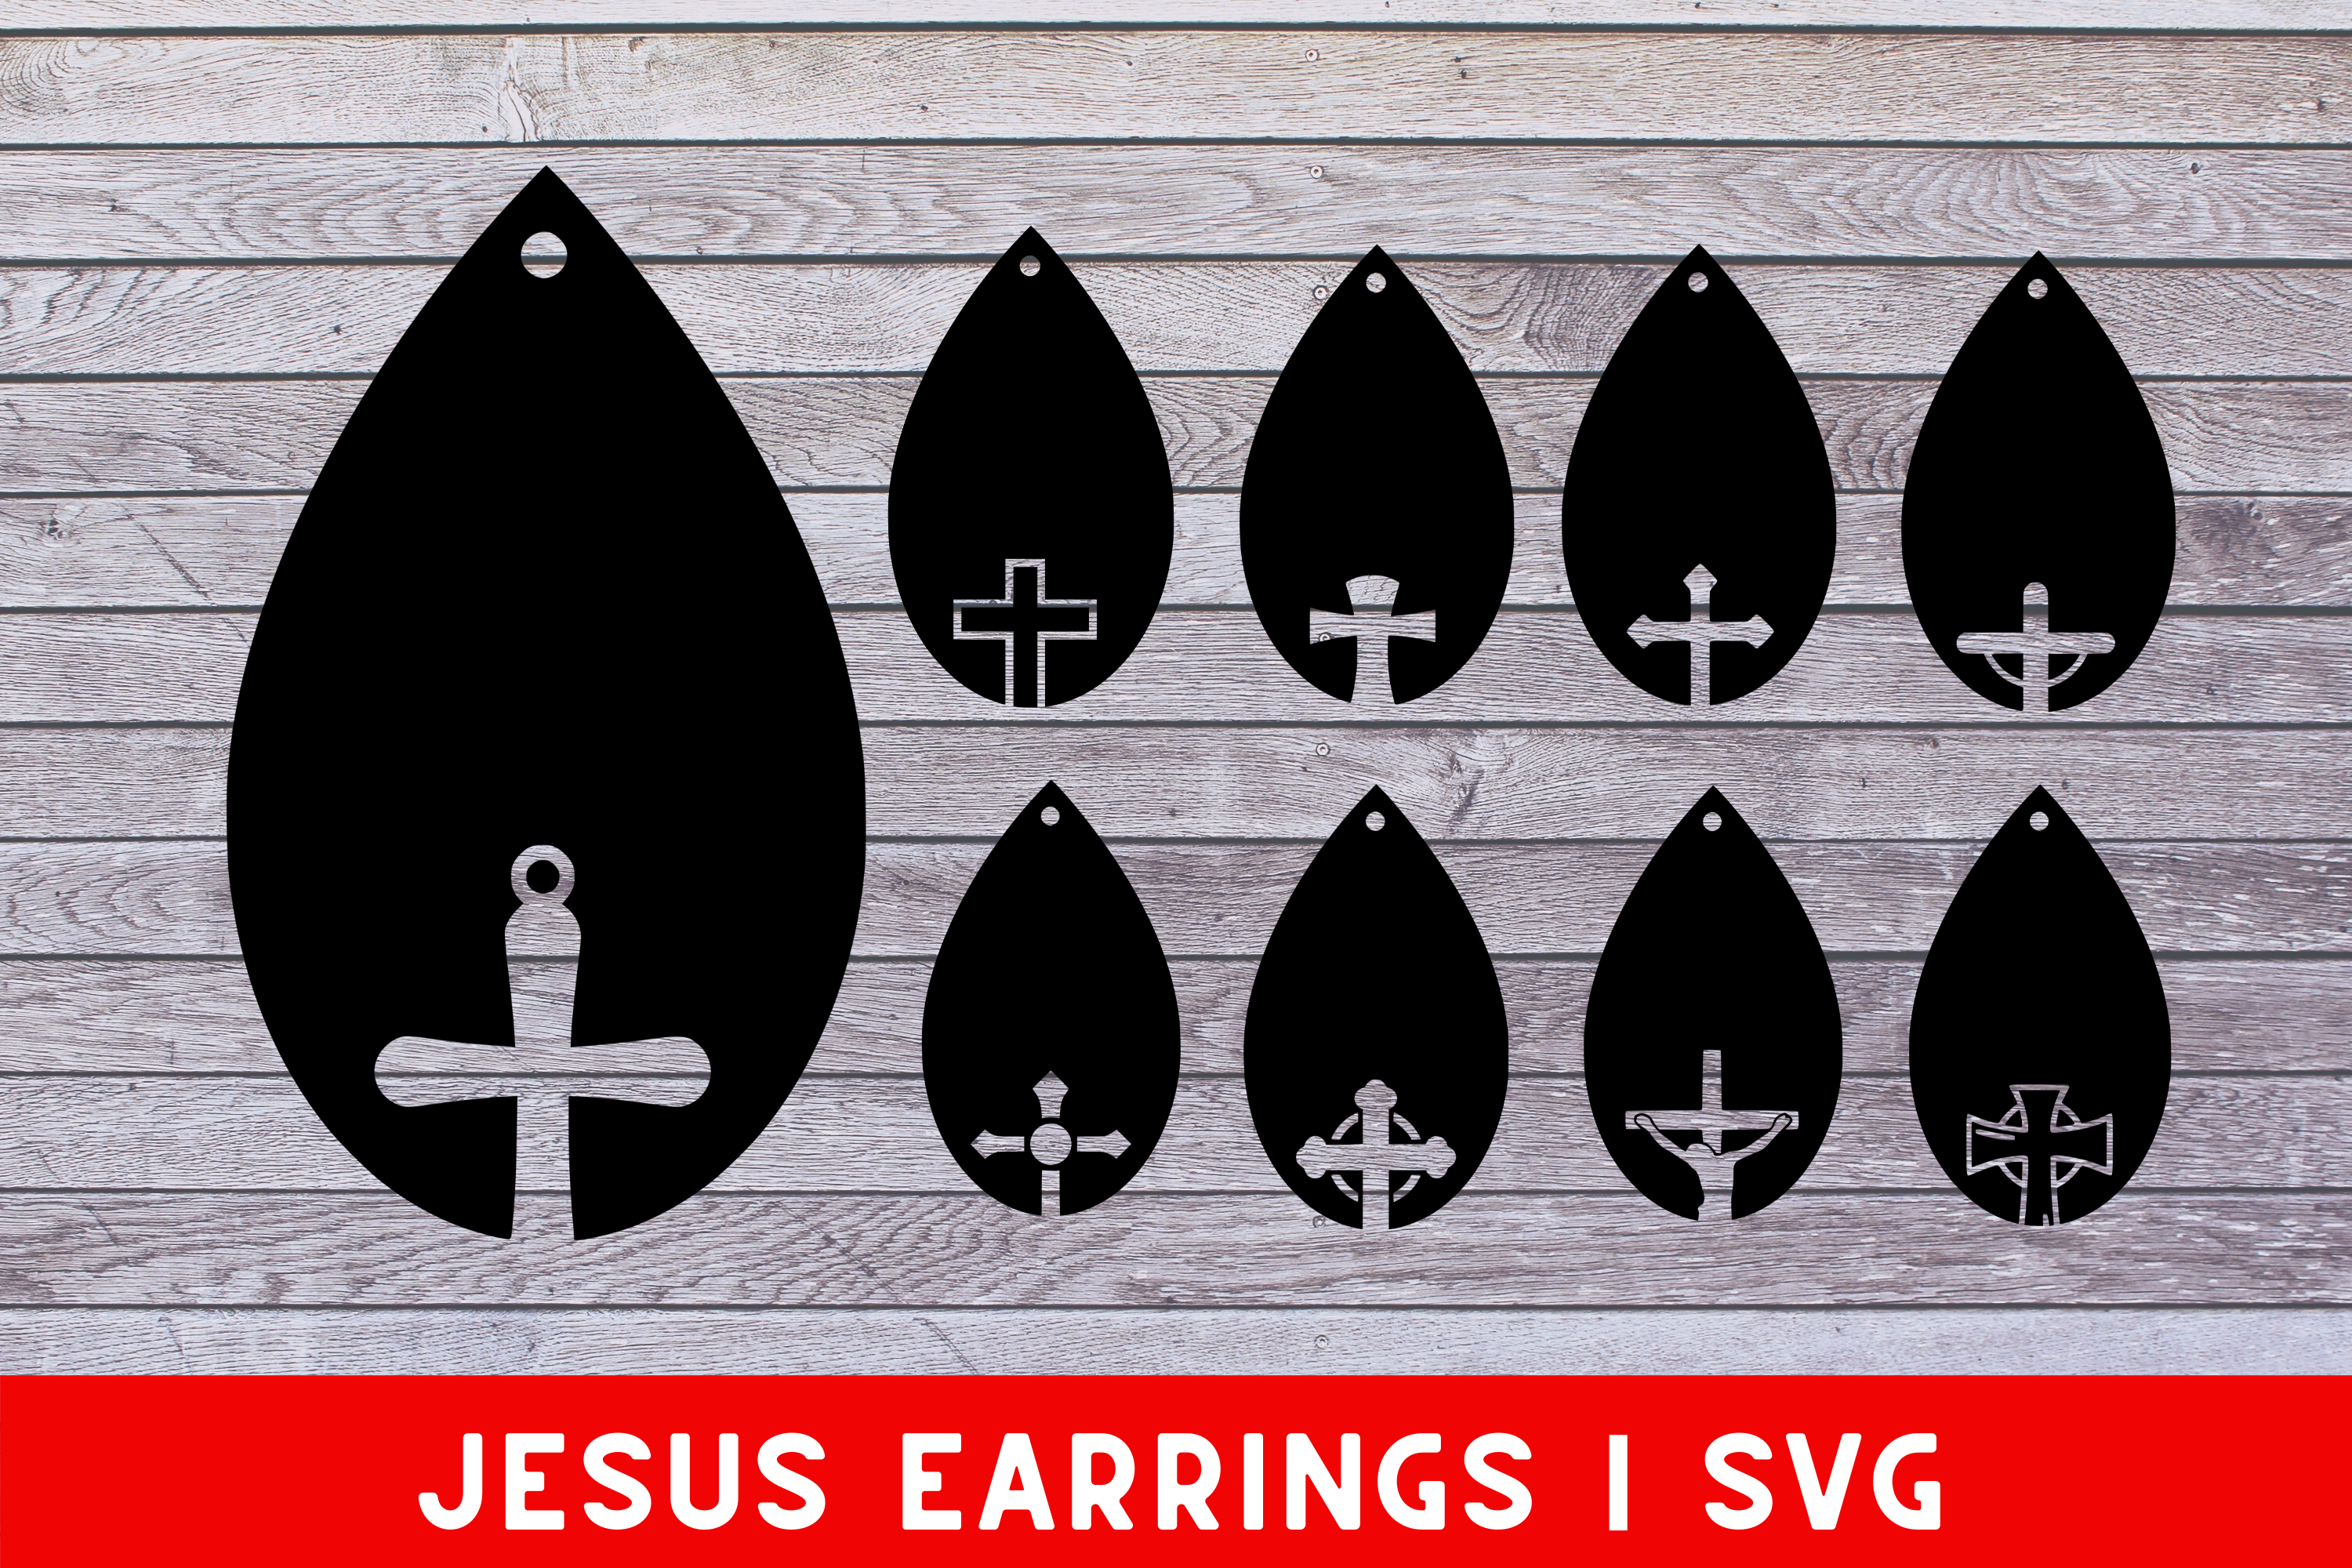 Download Free Jesus Earrings Svg Cut File 9 Graphic By Mockup Venue for Cricut Explore, Silhouette and other cutting machines.